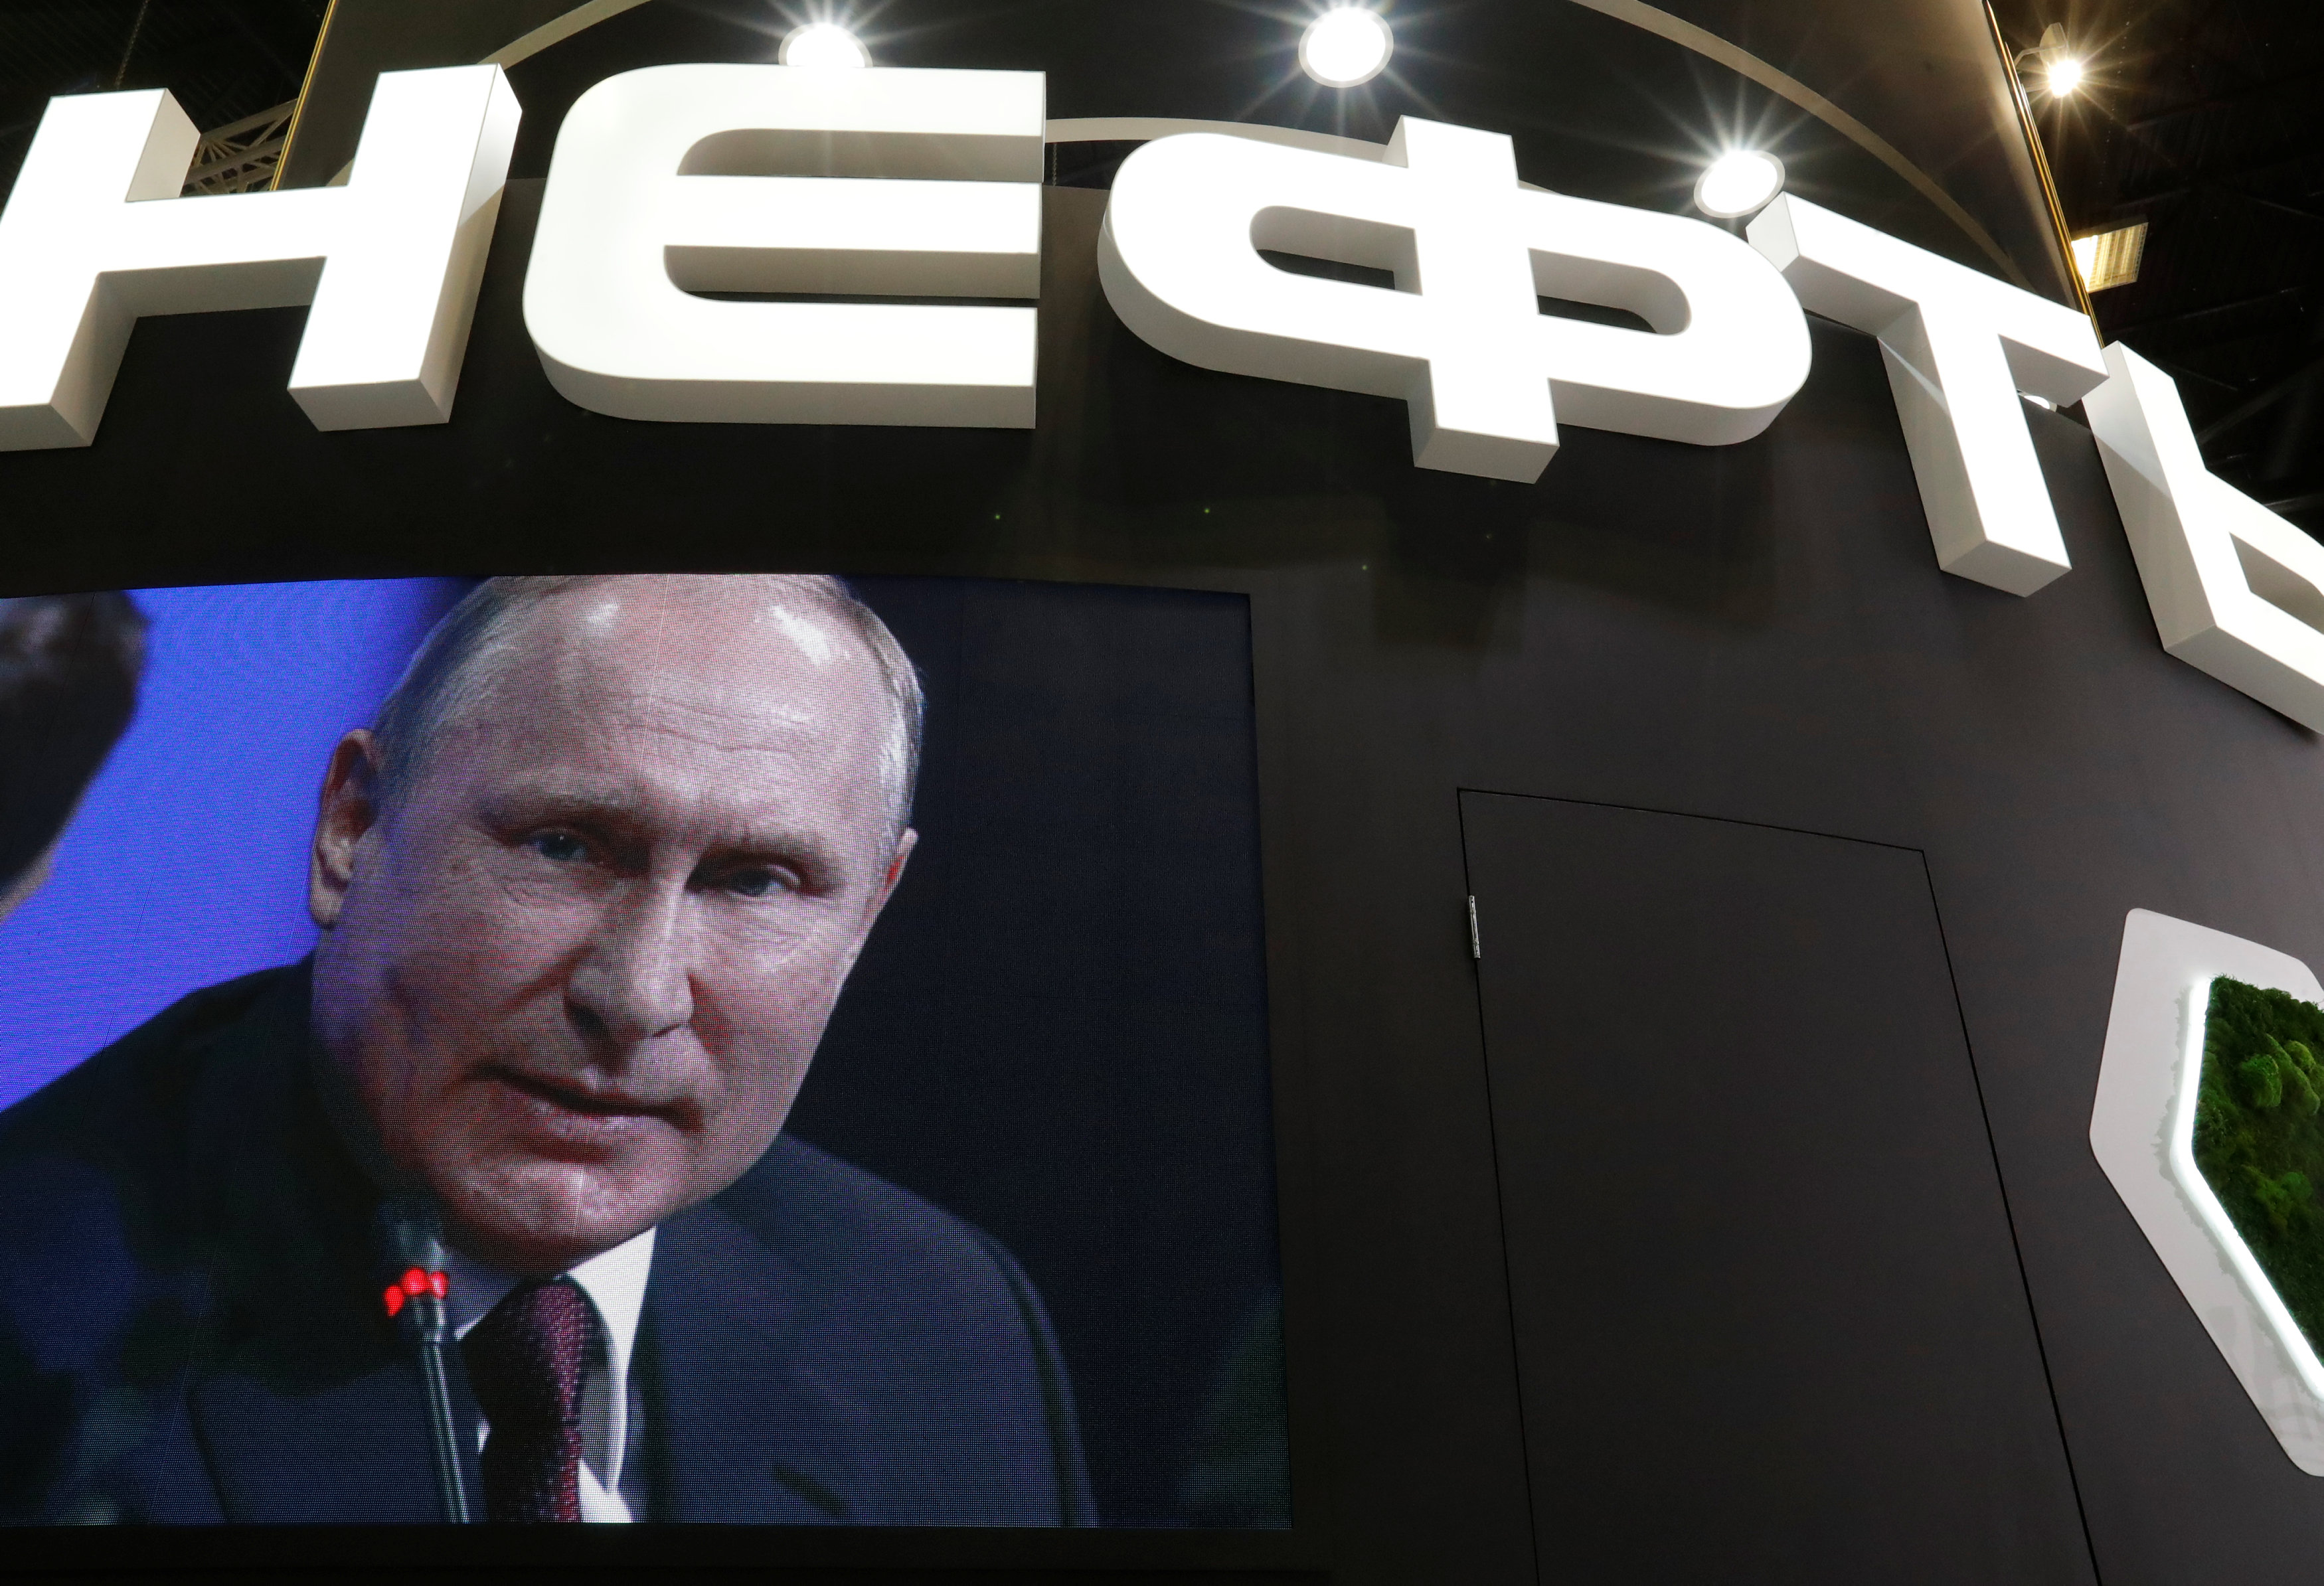 Russian President Vladimir Putin is seen on a screen at the stand of Russian state oil major Rosneft during the St. Petersburg International Economic Forum (SPIEF), Russia May 25, 2018. REUTERS/Sergei Karpukhin